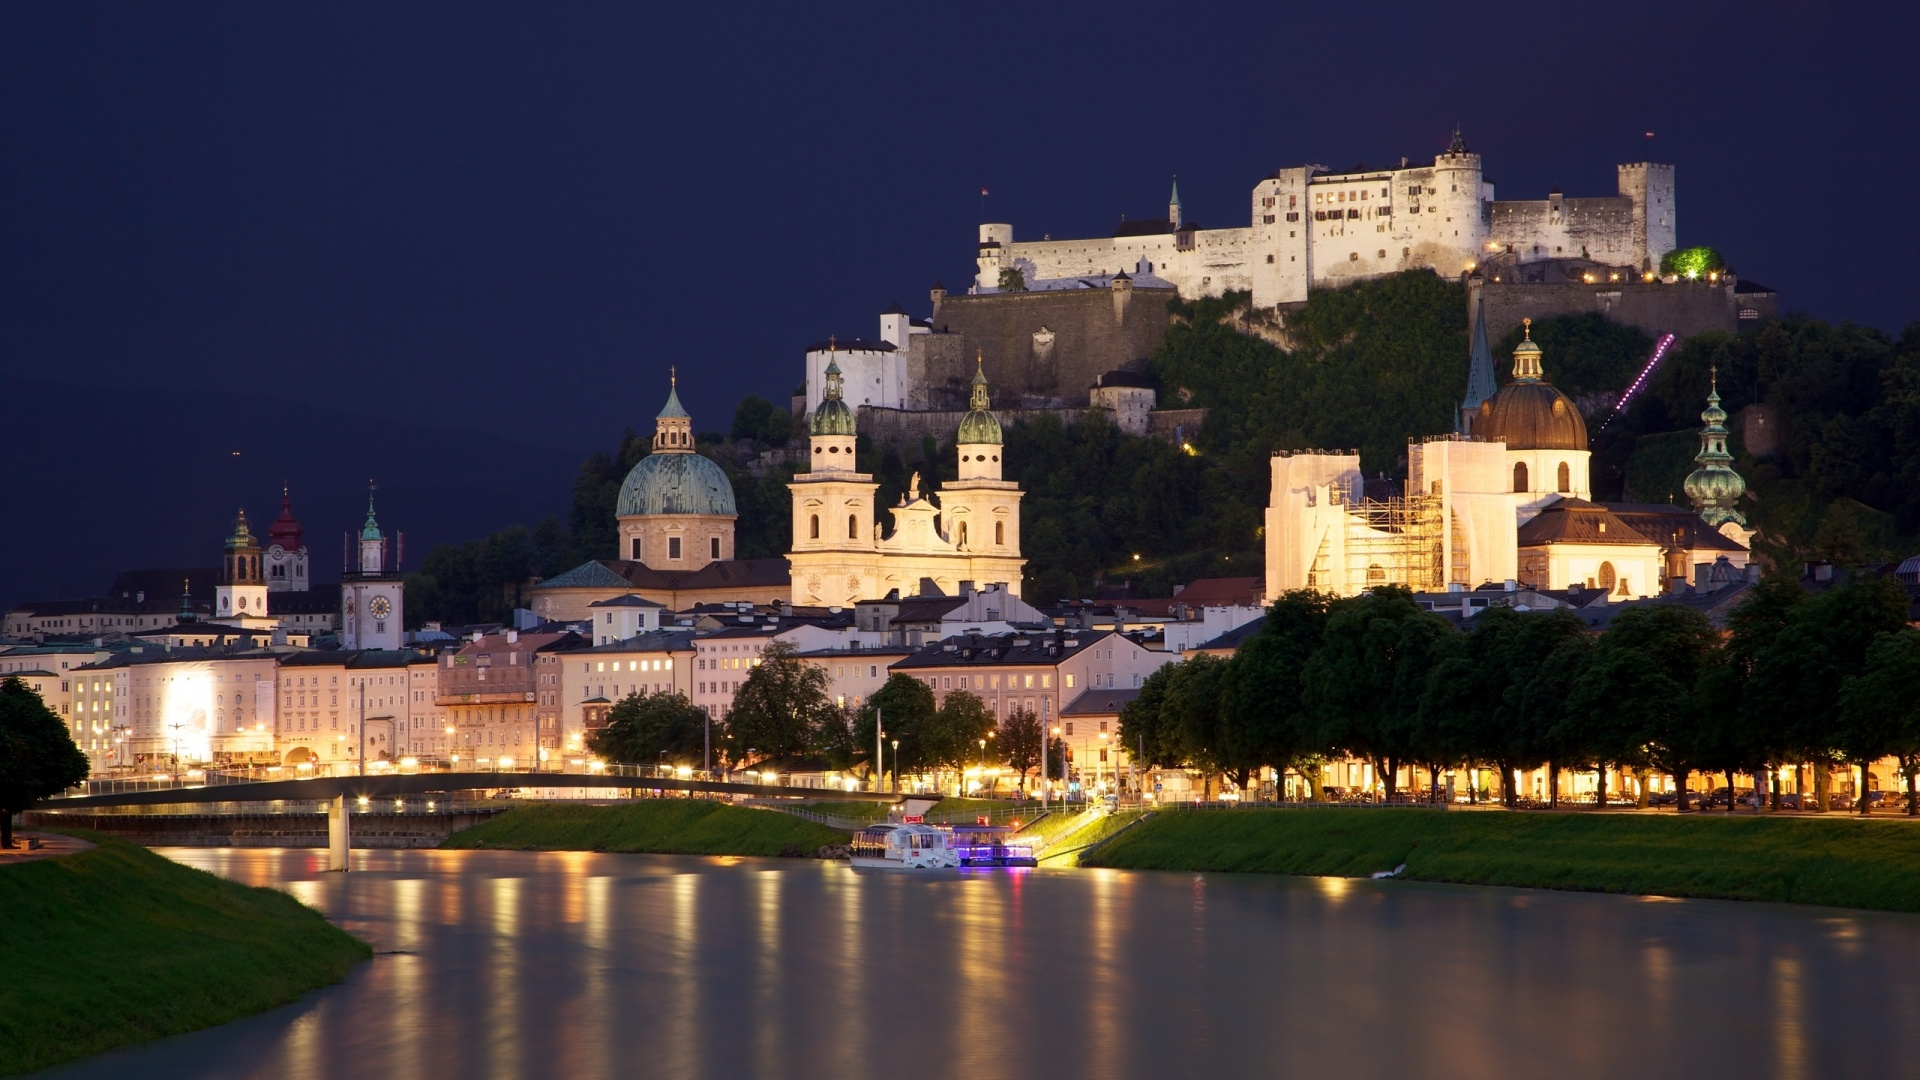 Salzburg Wallpapers and Background Images   stmednet 1920x1080